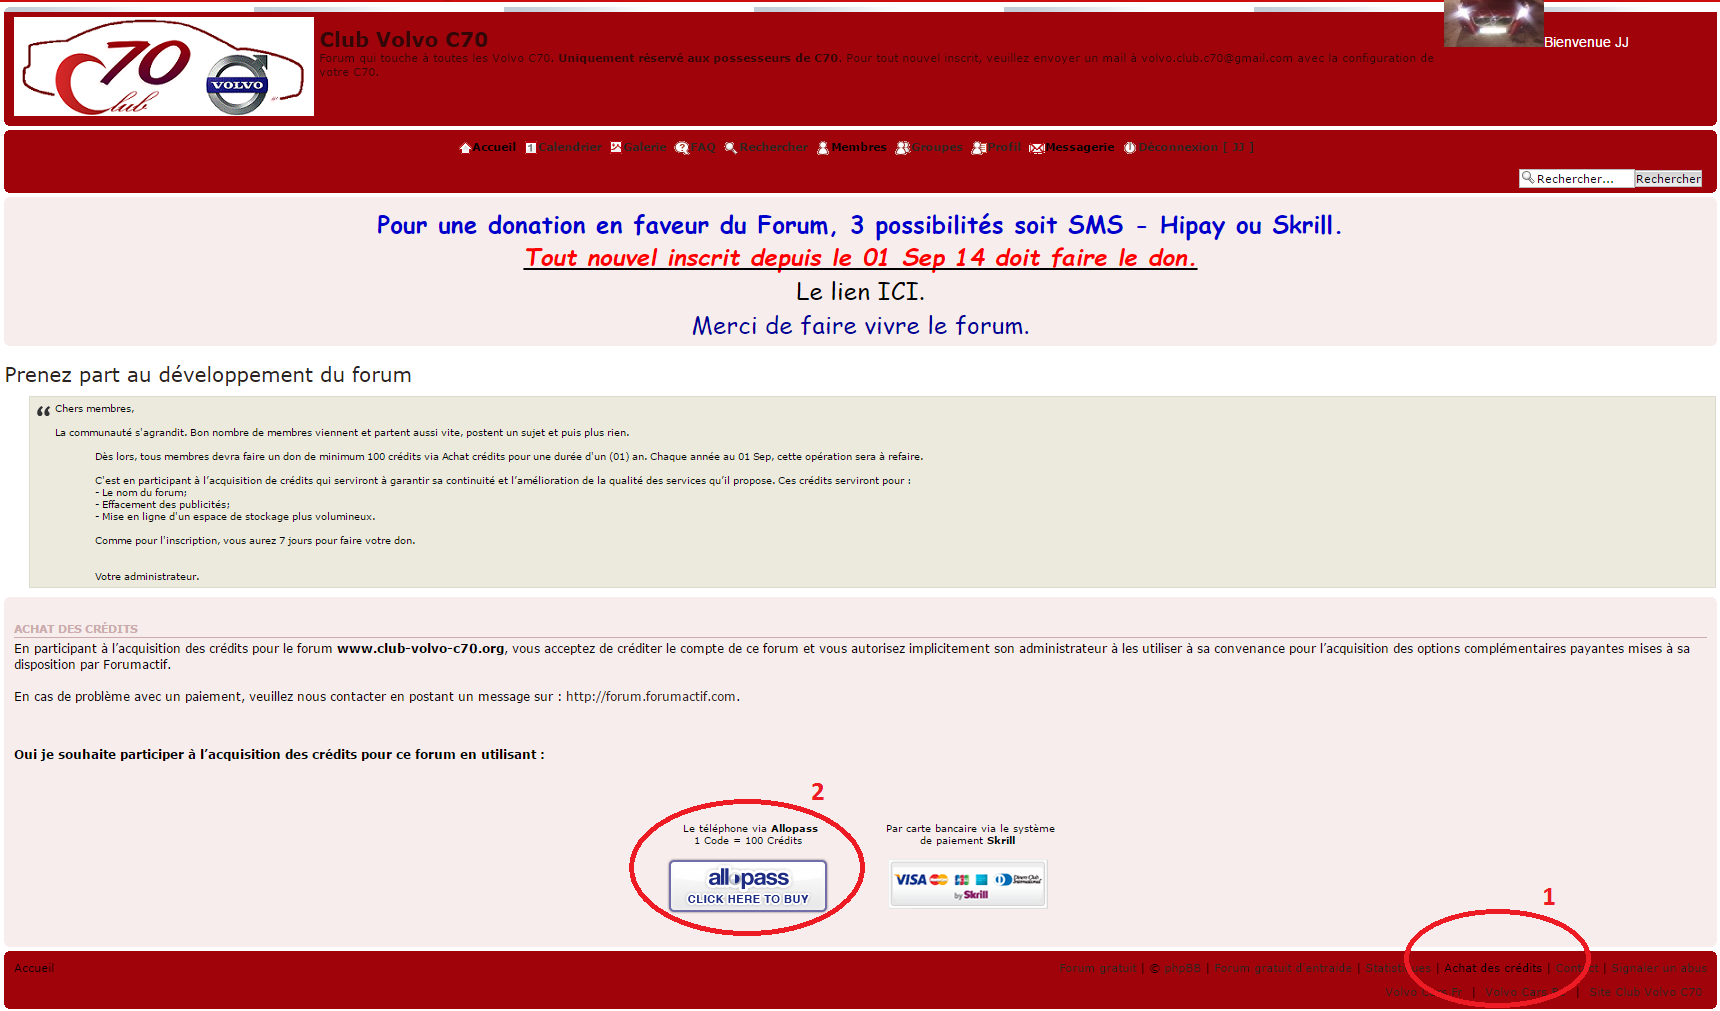 Comment faire la Contribution pour le Forum Pictur10